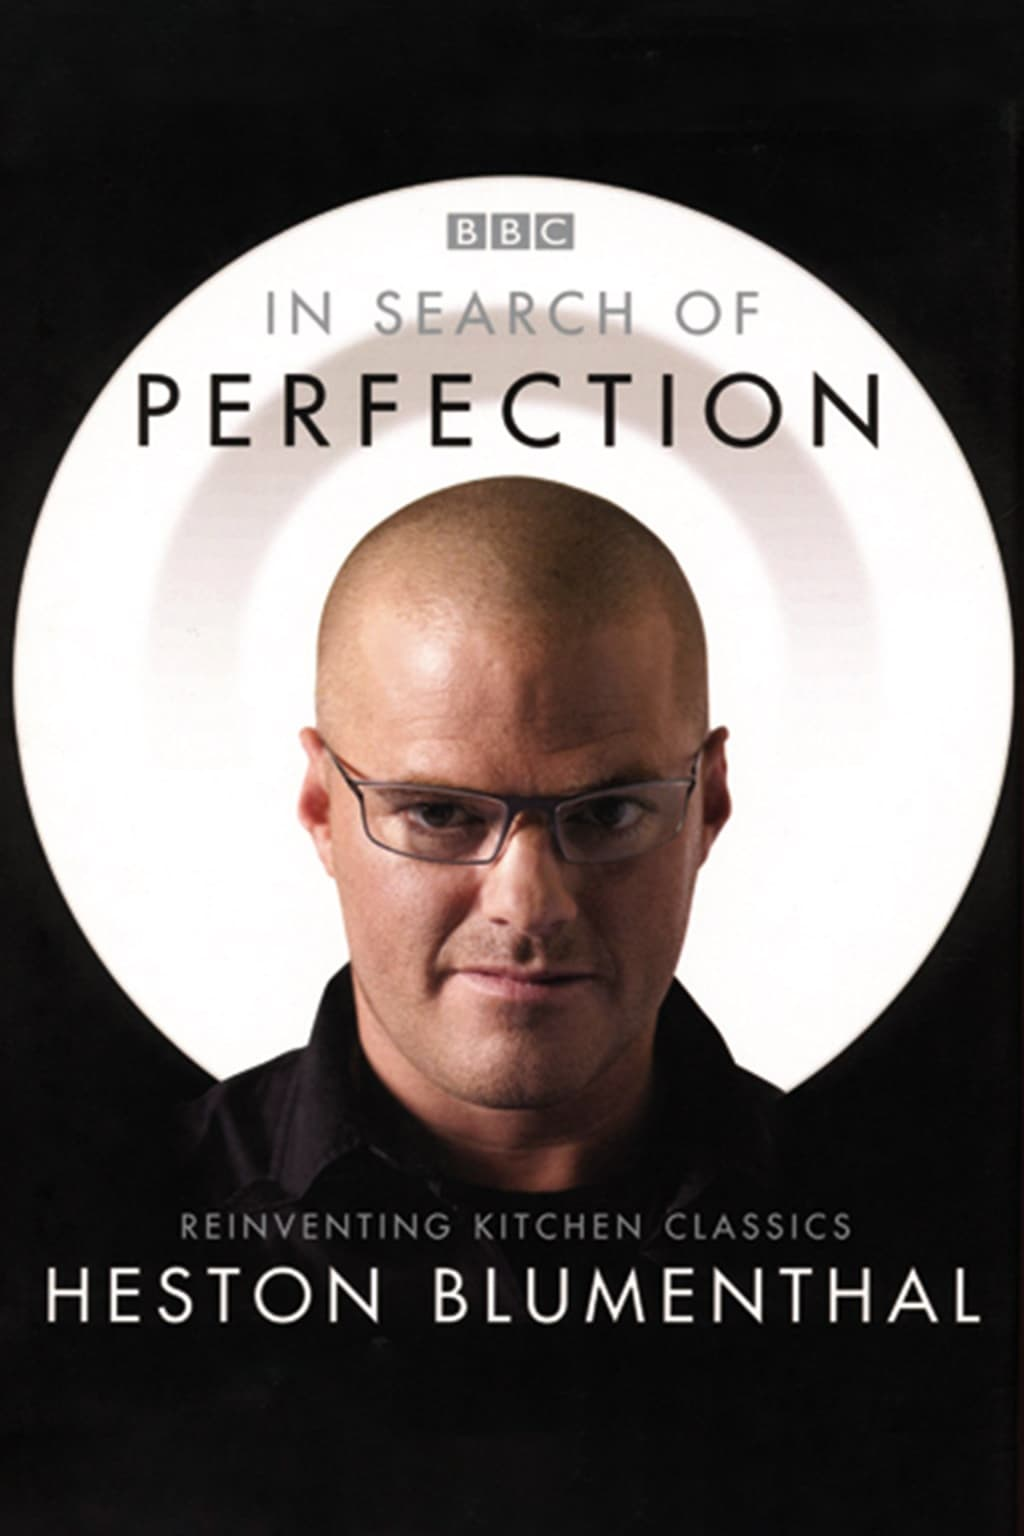 Heston Blumenthal: In Search of Perfection (2006)